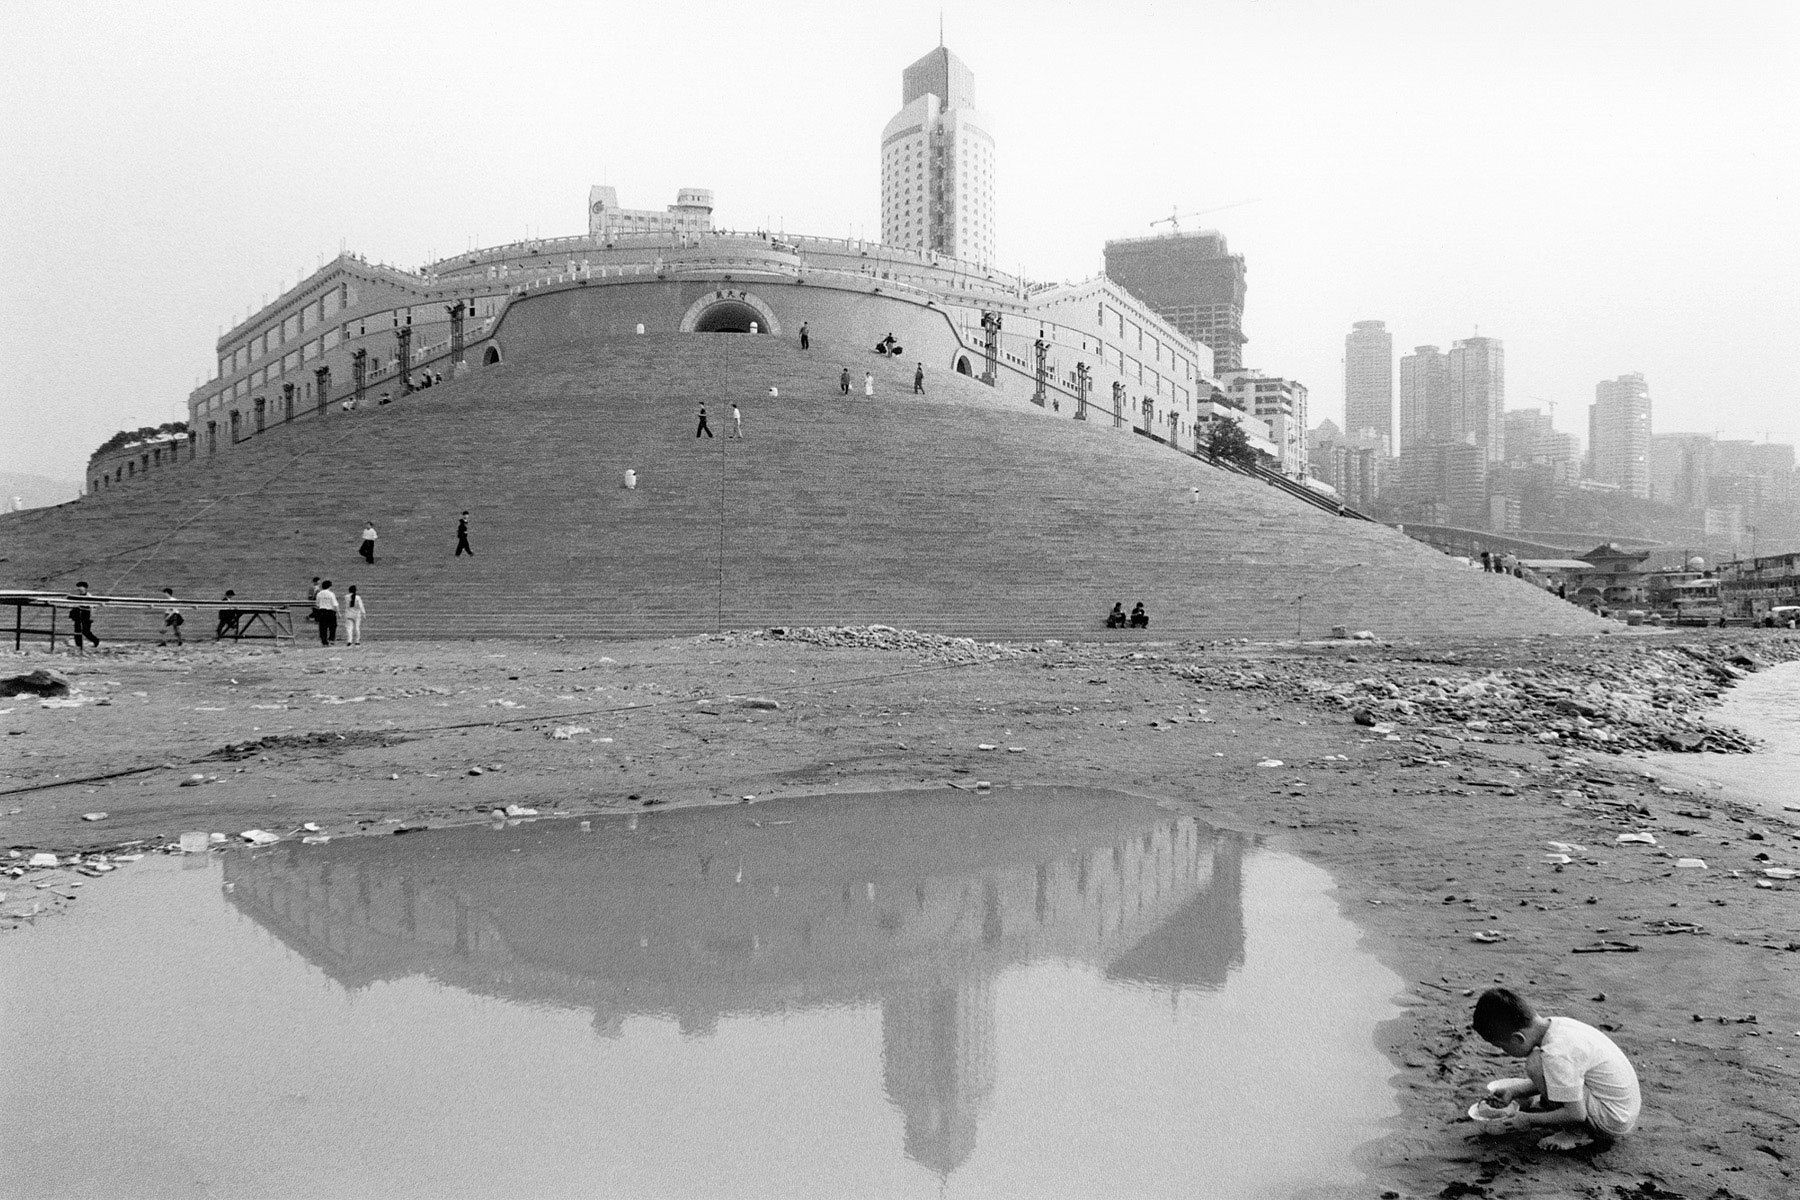 Chaotianmen-New Harbor, Chongqing City, China 1999